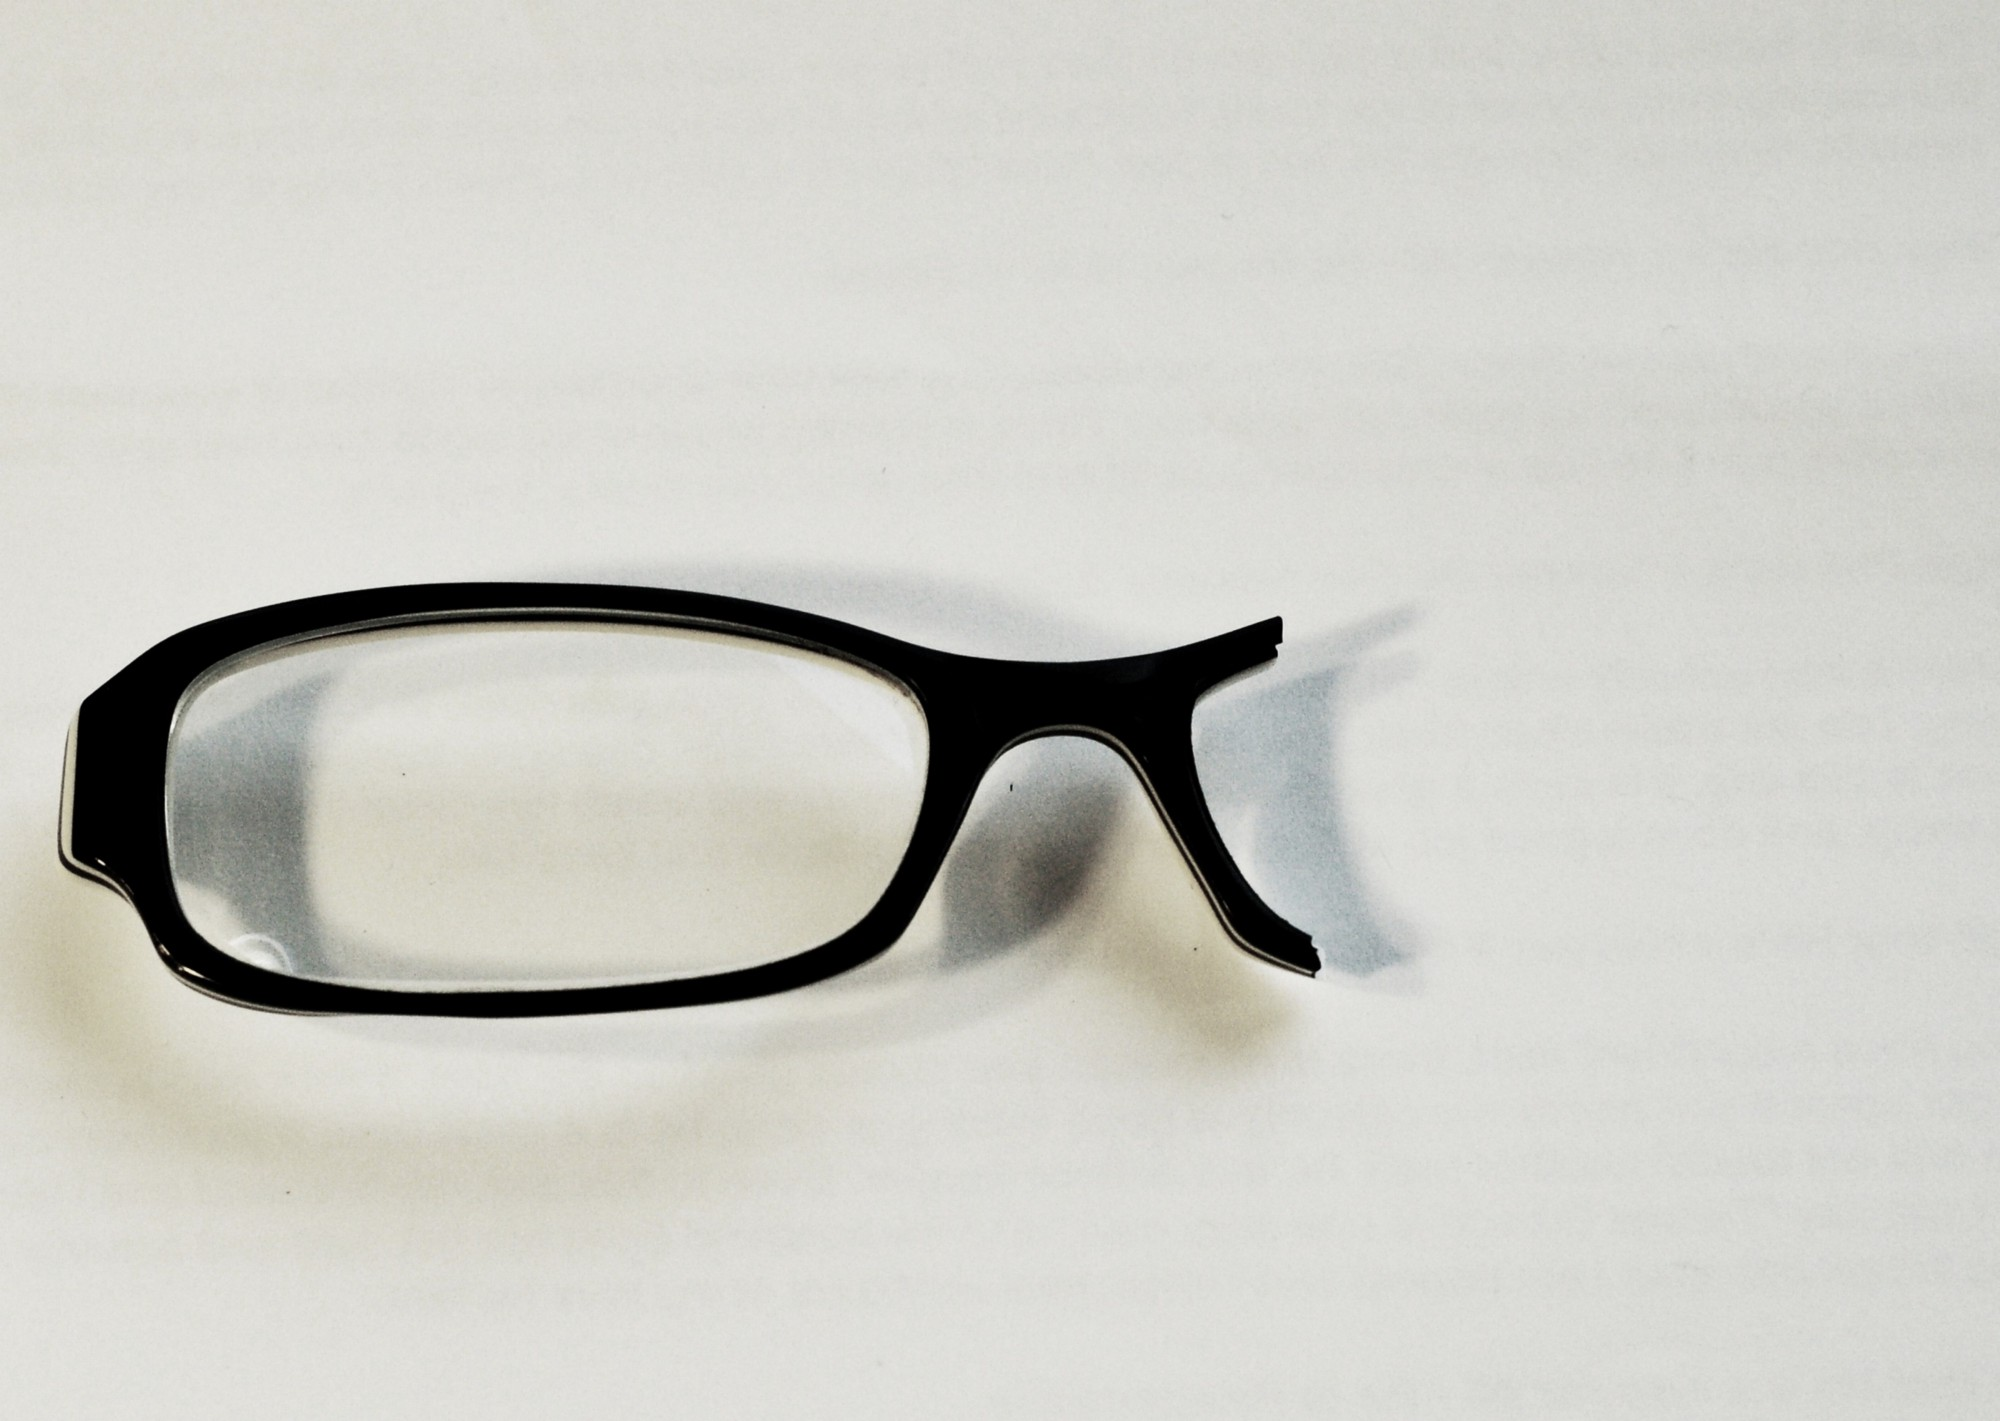 6 Reasons Why Buying Cheap Glasses Online May Be the Worst Deal Ever